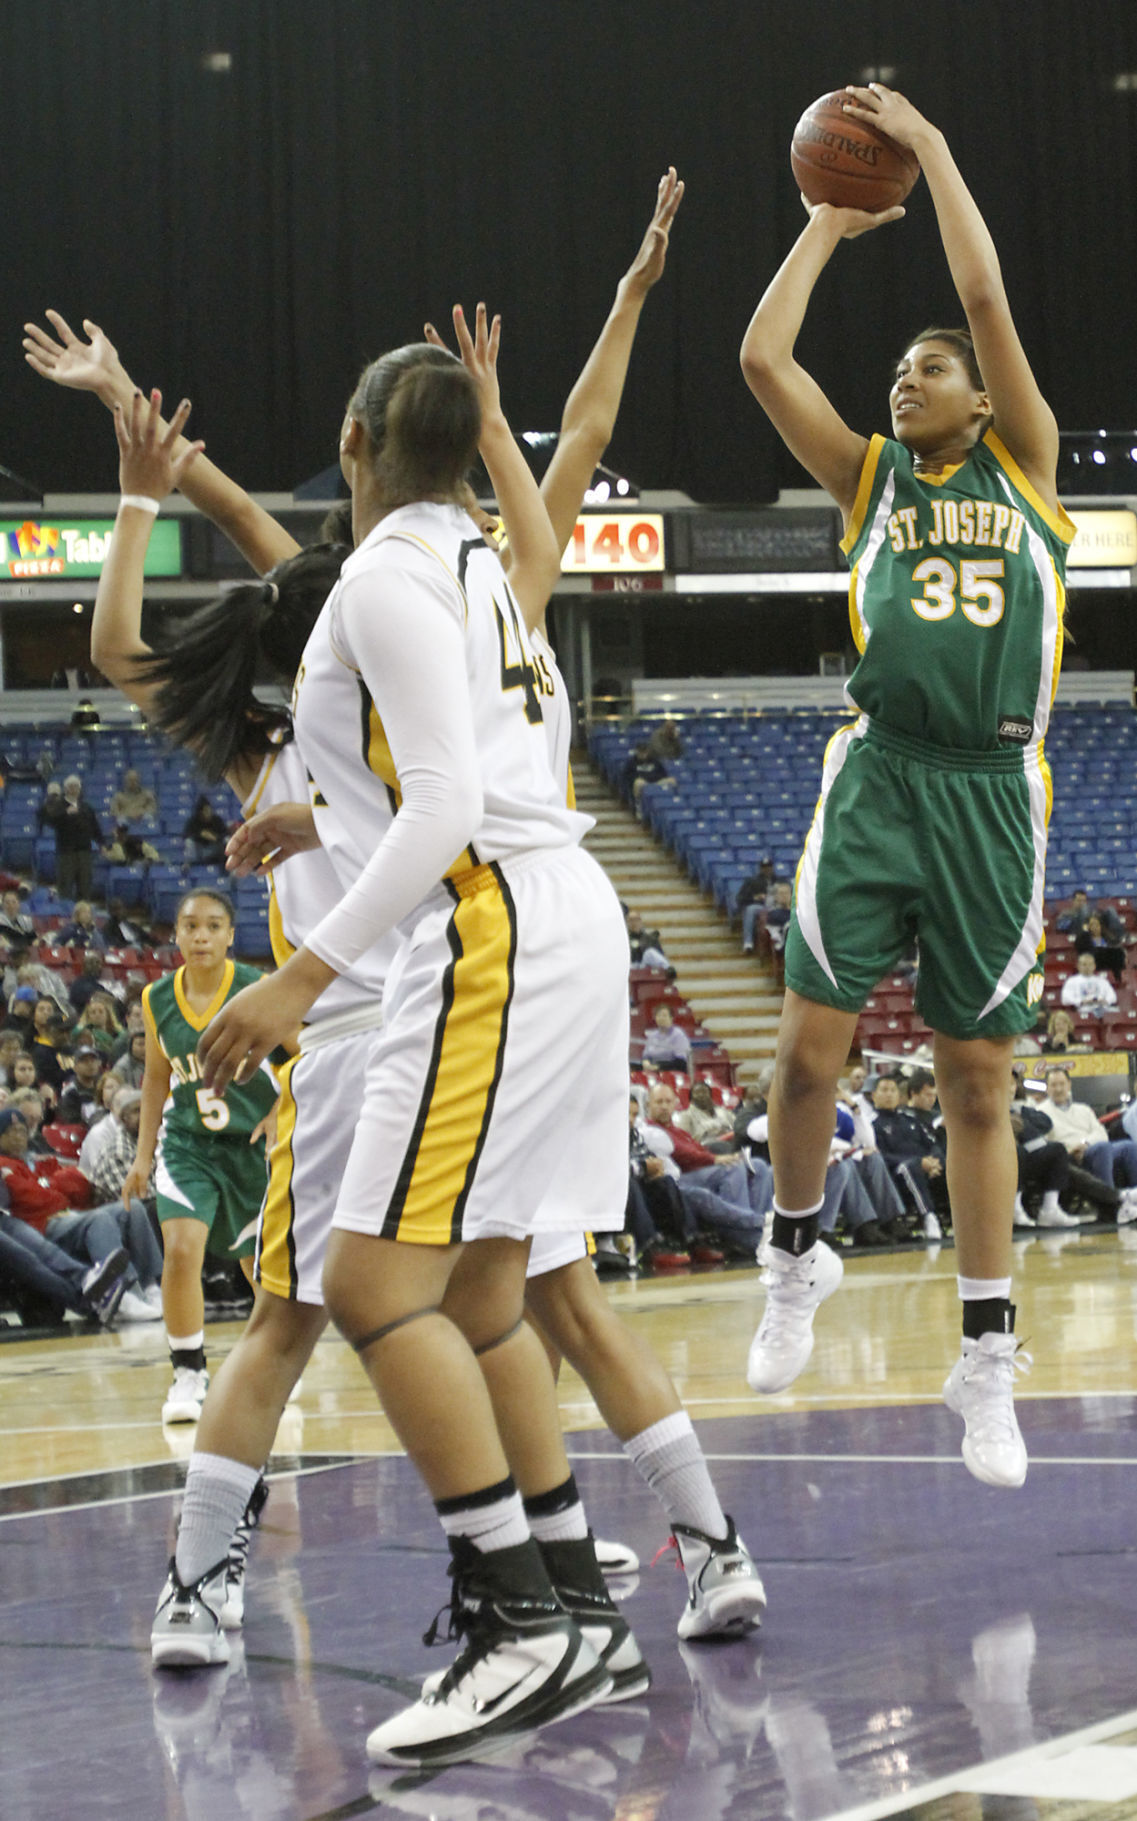 Photos: Remembering St. Joseph's CIF State title win over Bishop O'Dowd in 2011